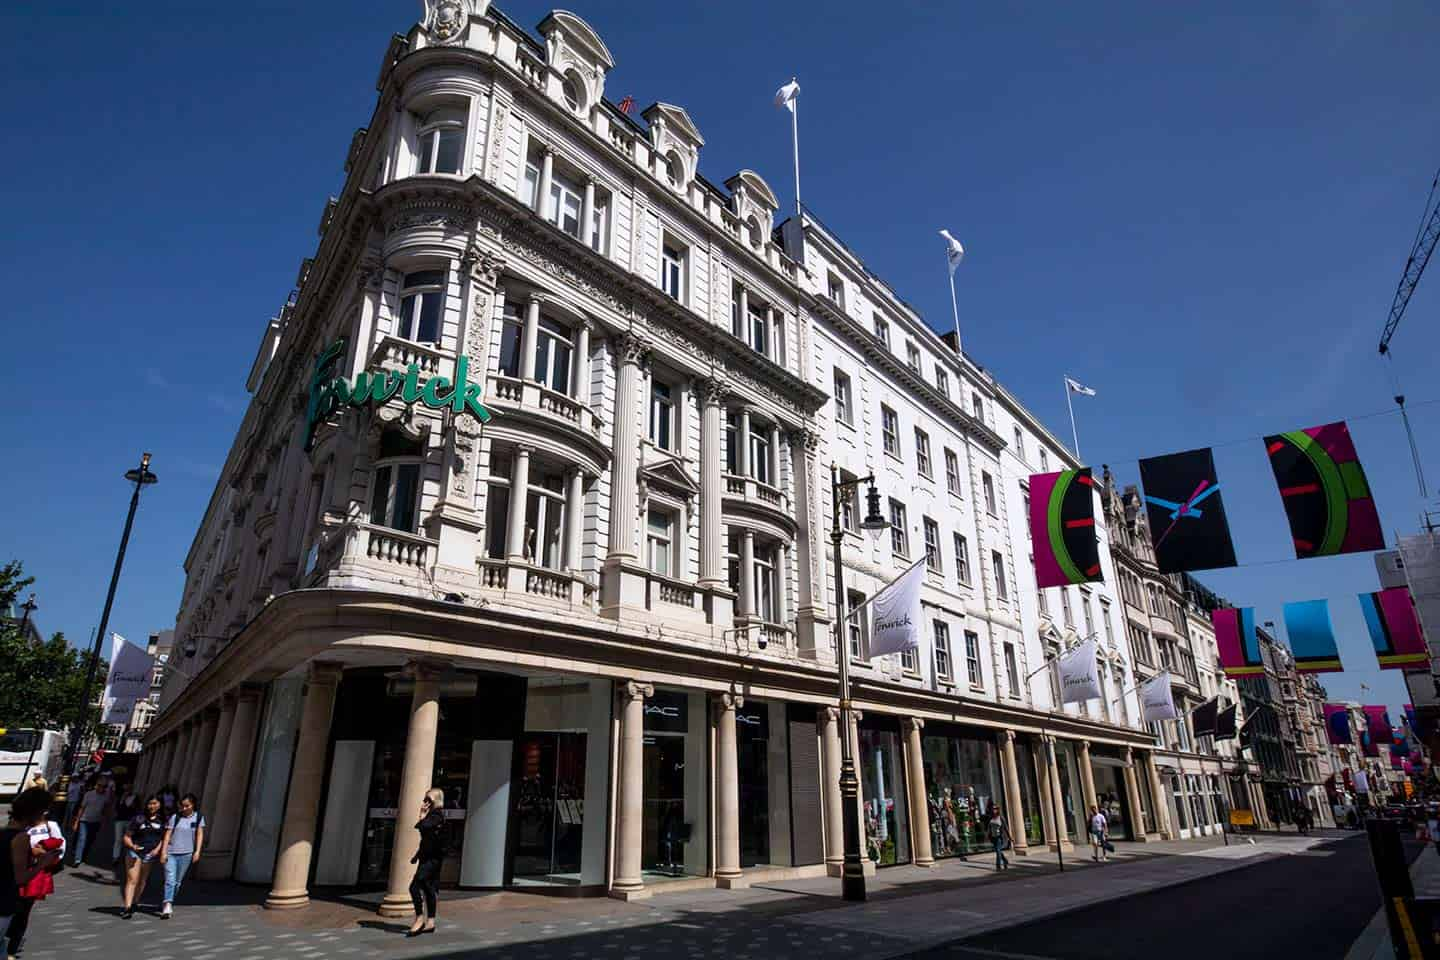 Image of the upmarket Fenwick department store on New Bond Street, London